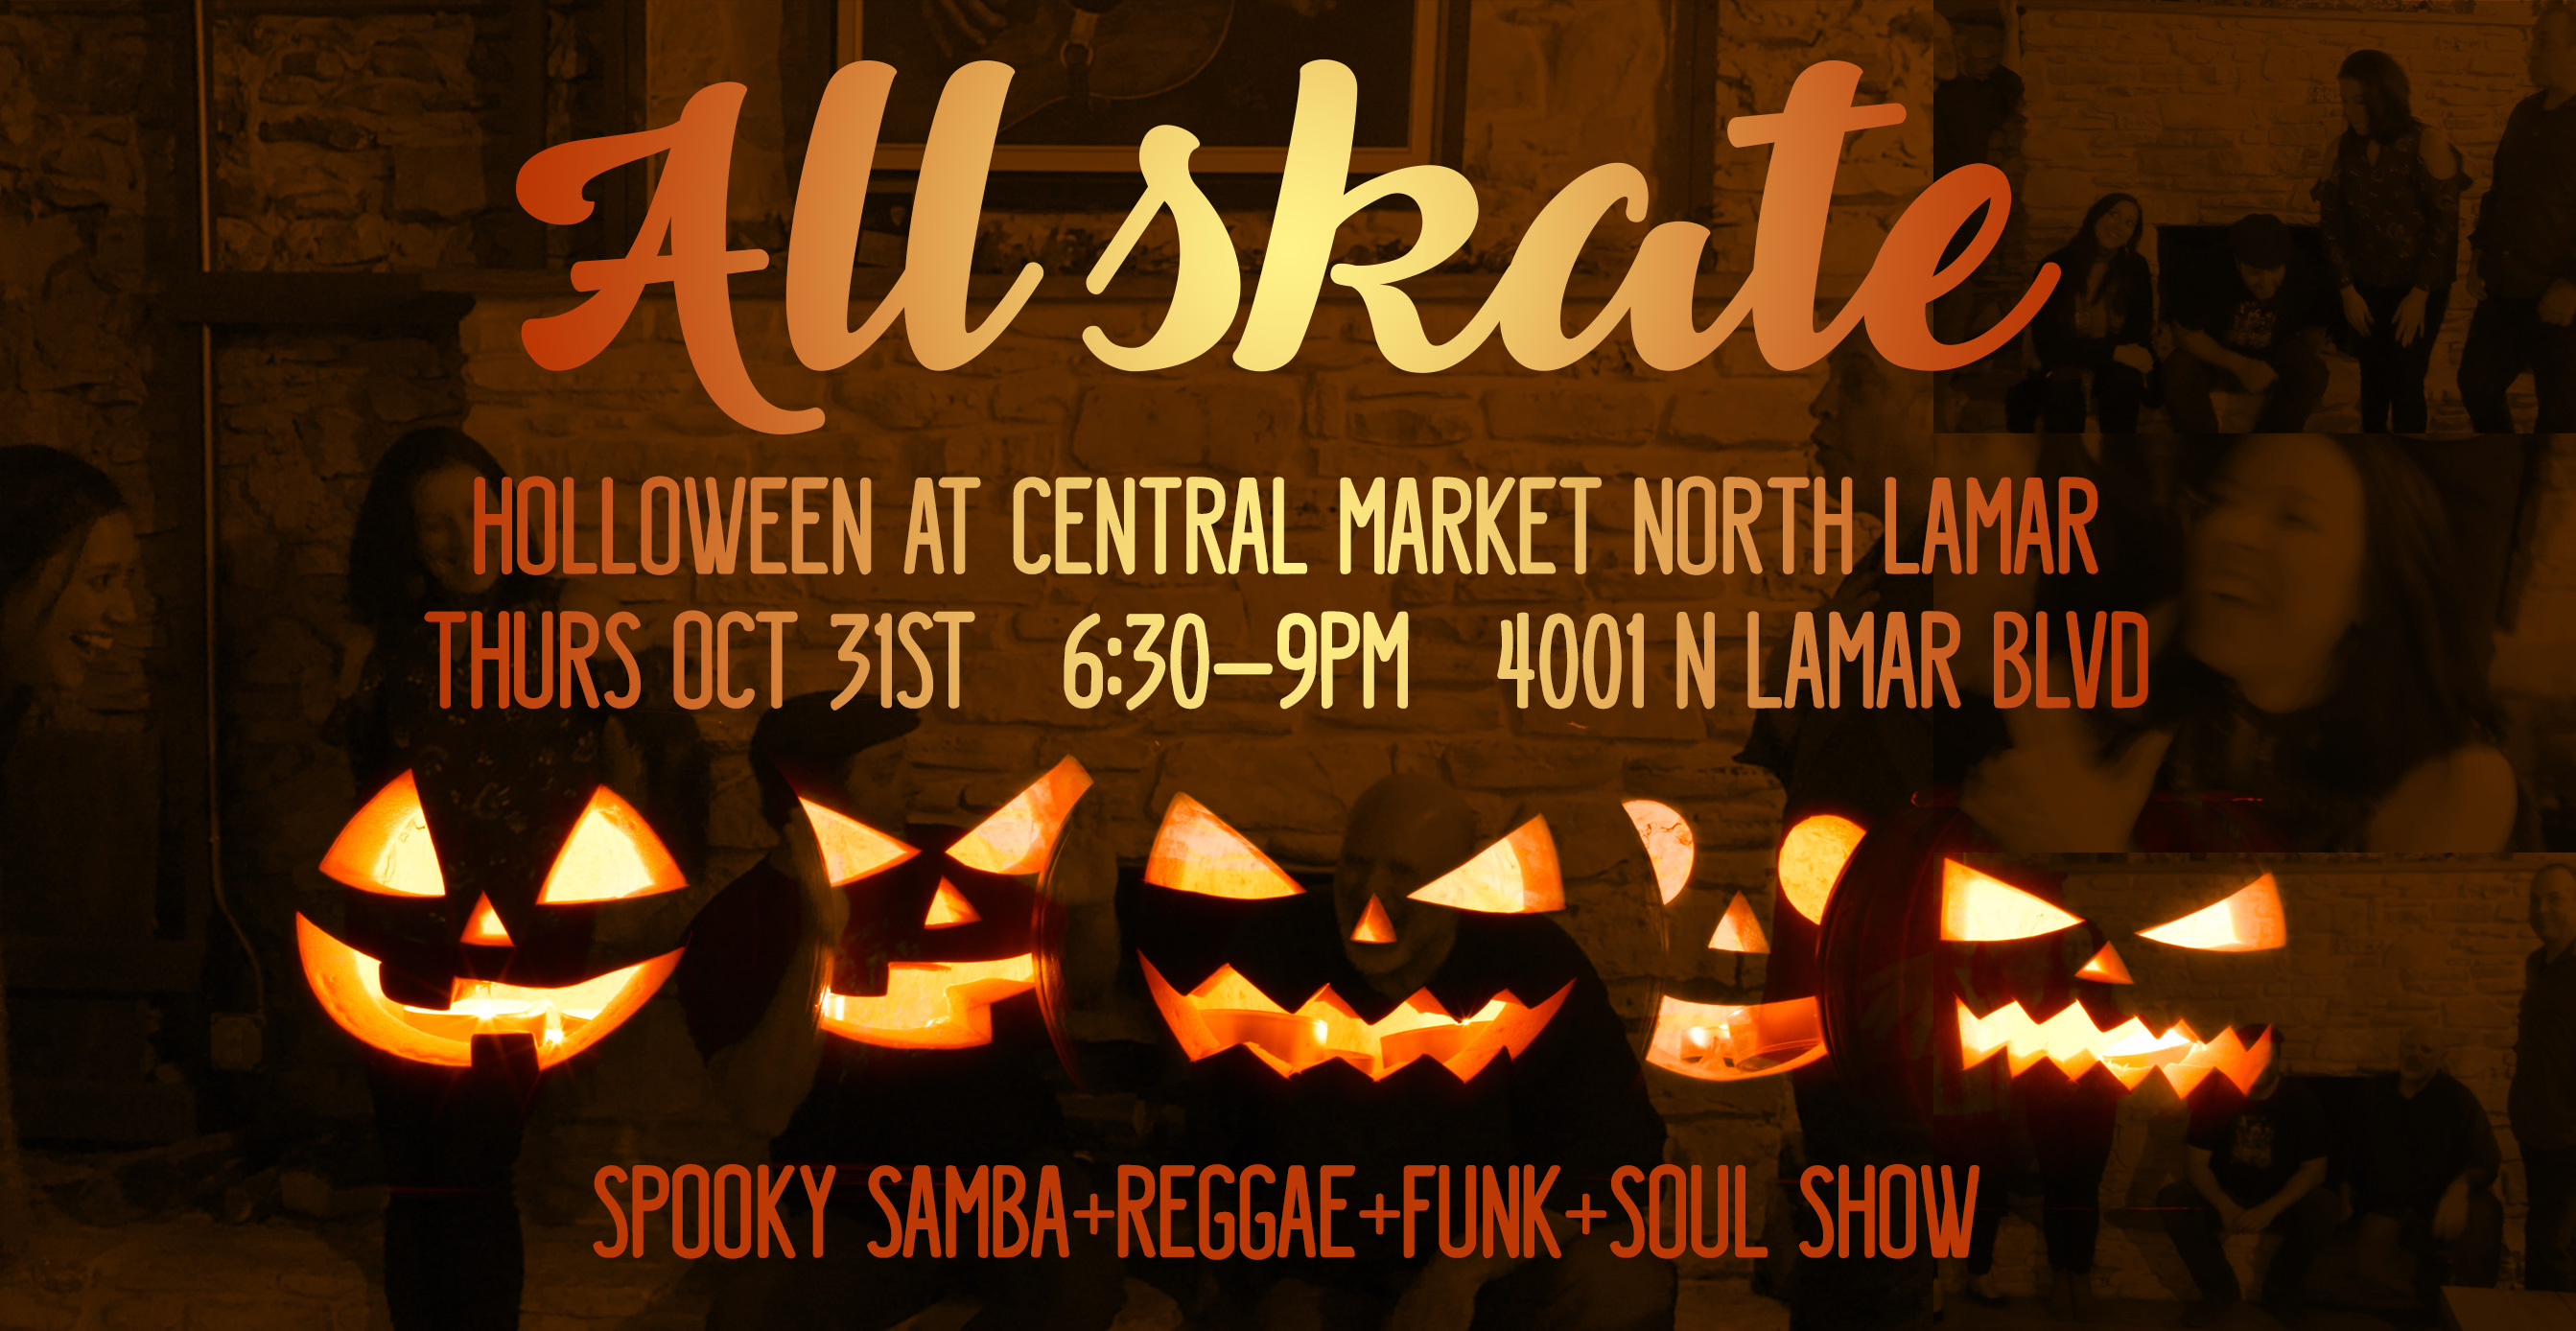 All Skate Halloween 2019 at Central Market North